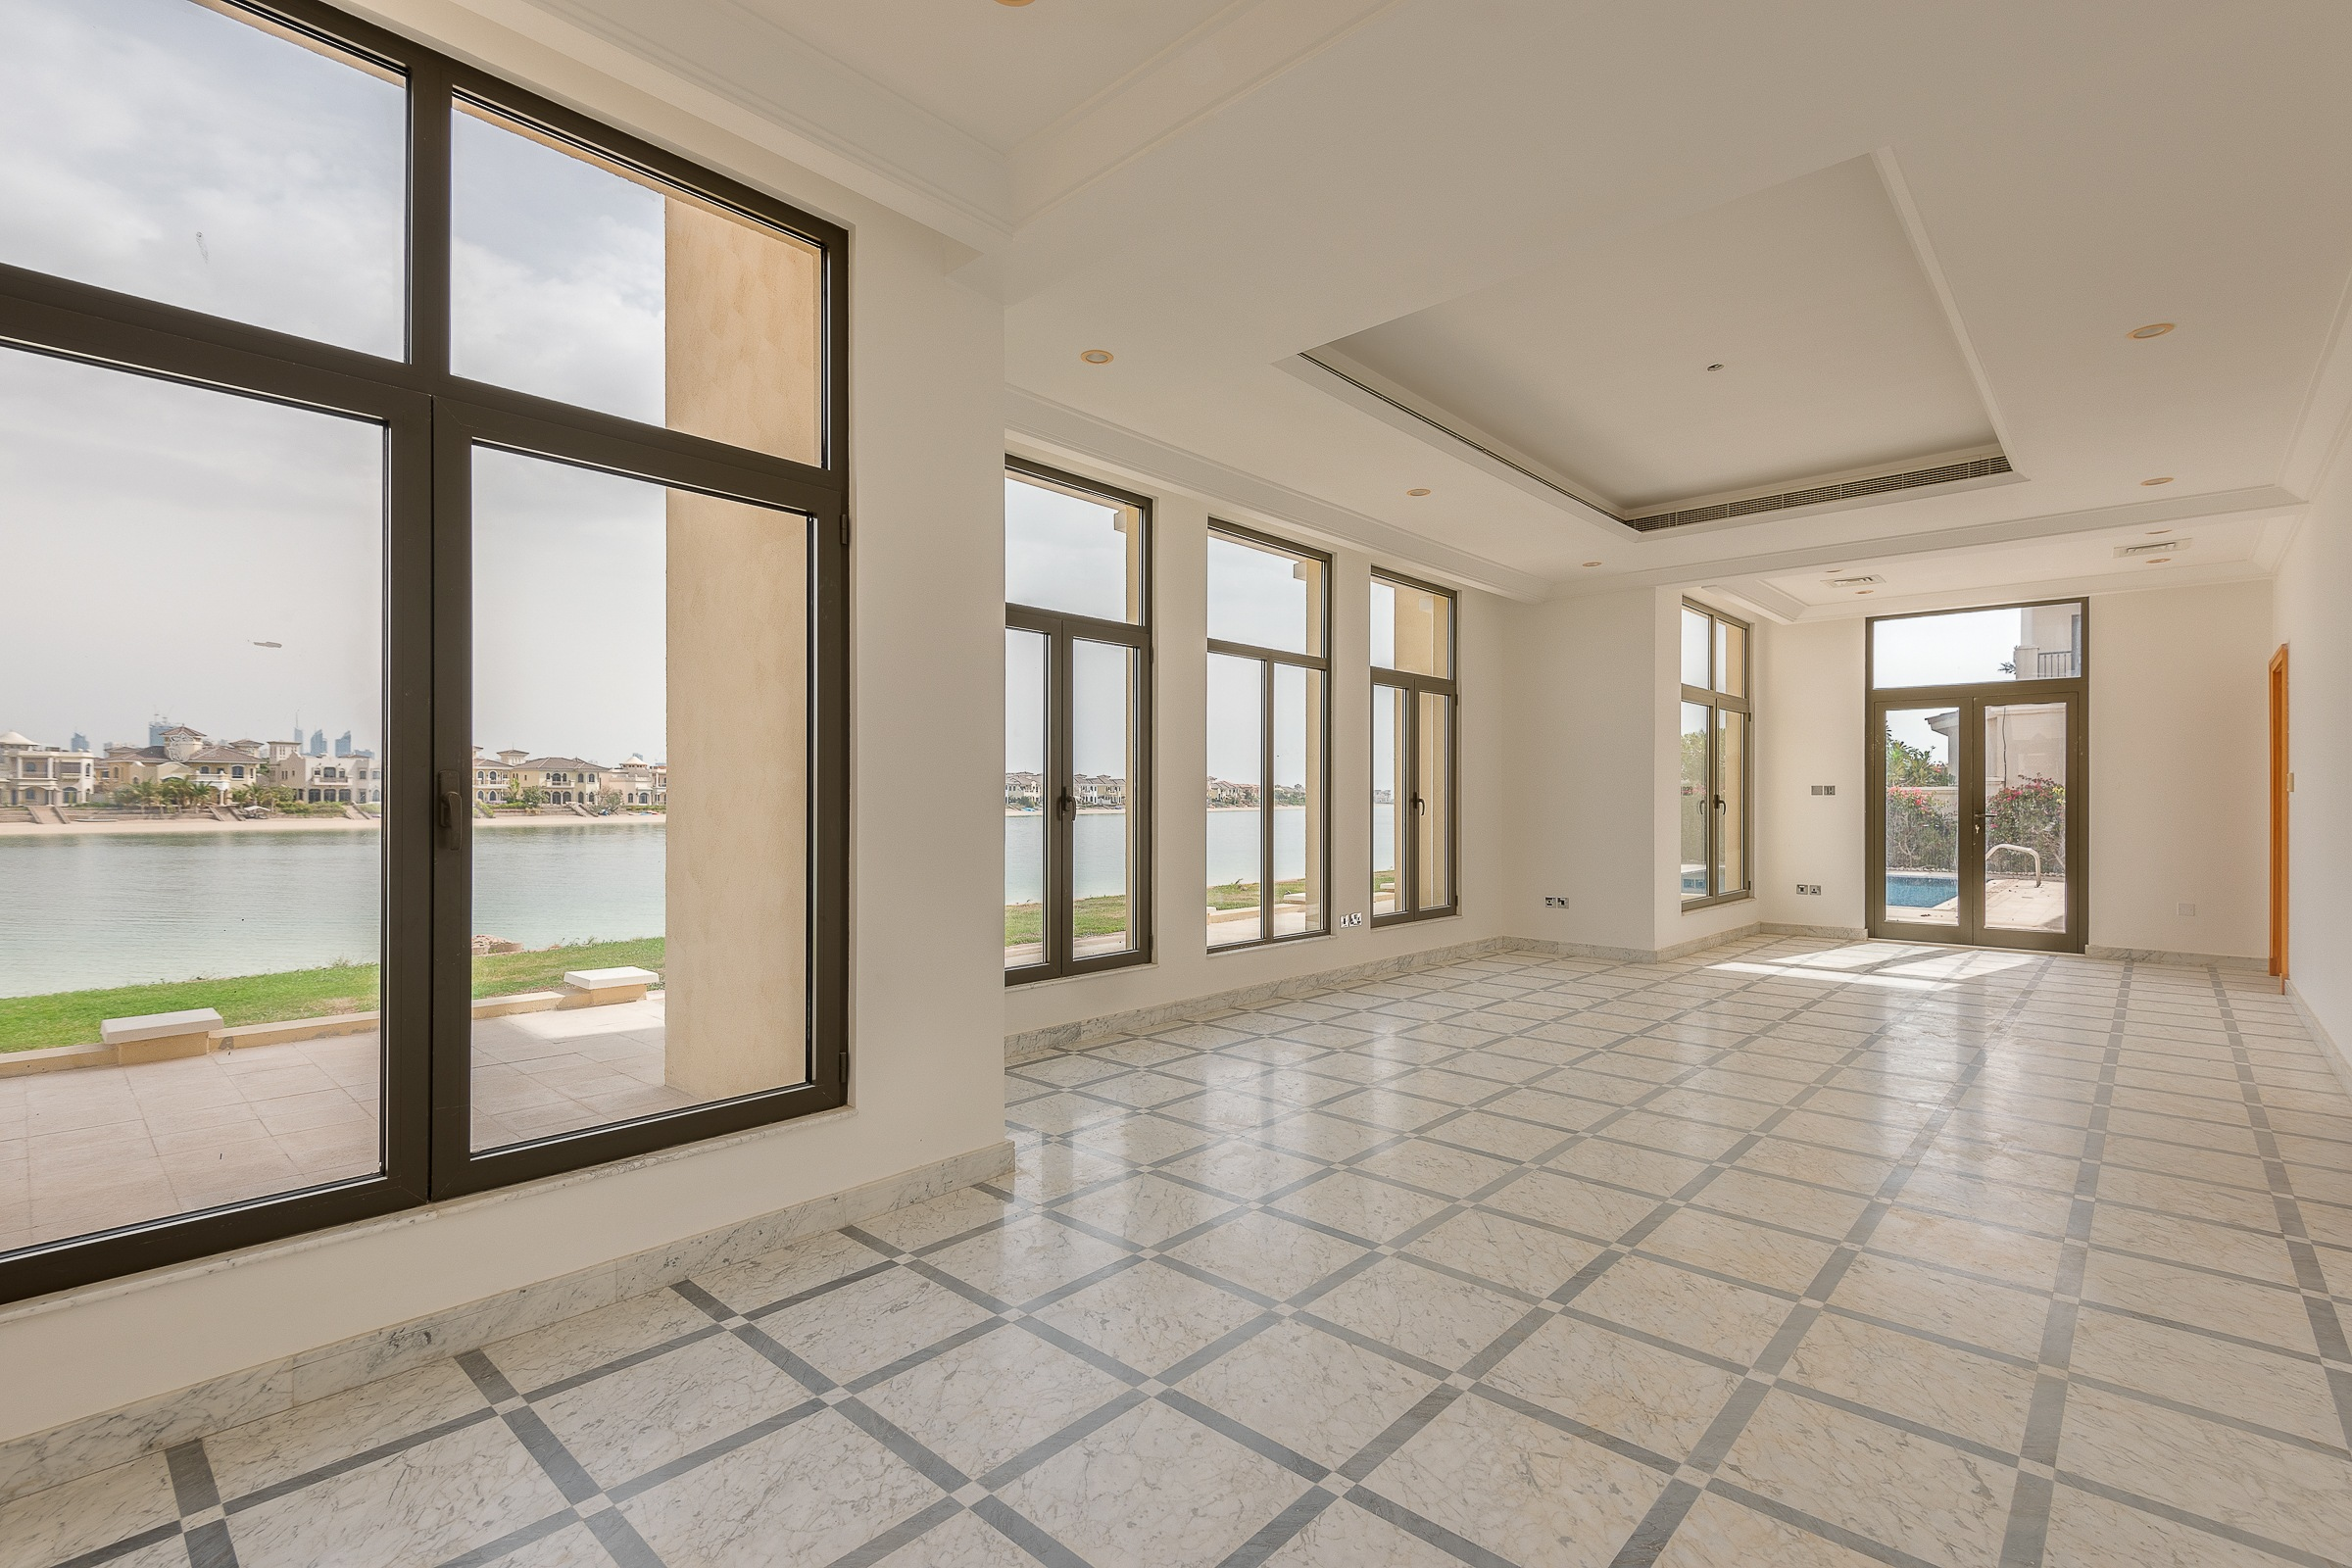 Central Gallery | 5 Bedroom | Atlantis View